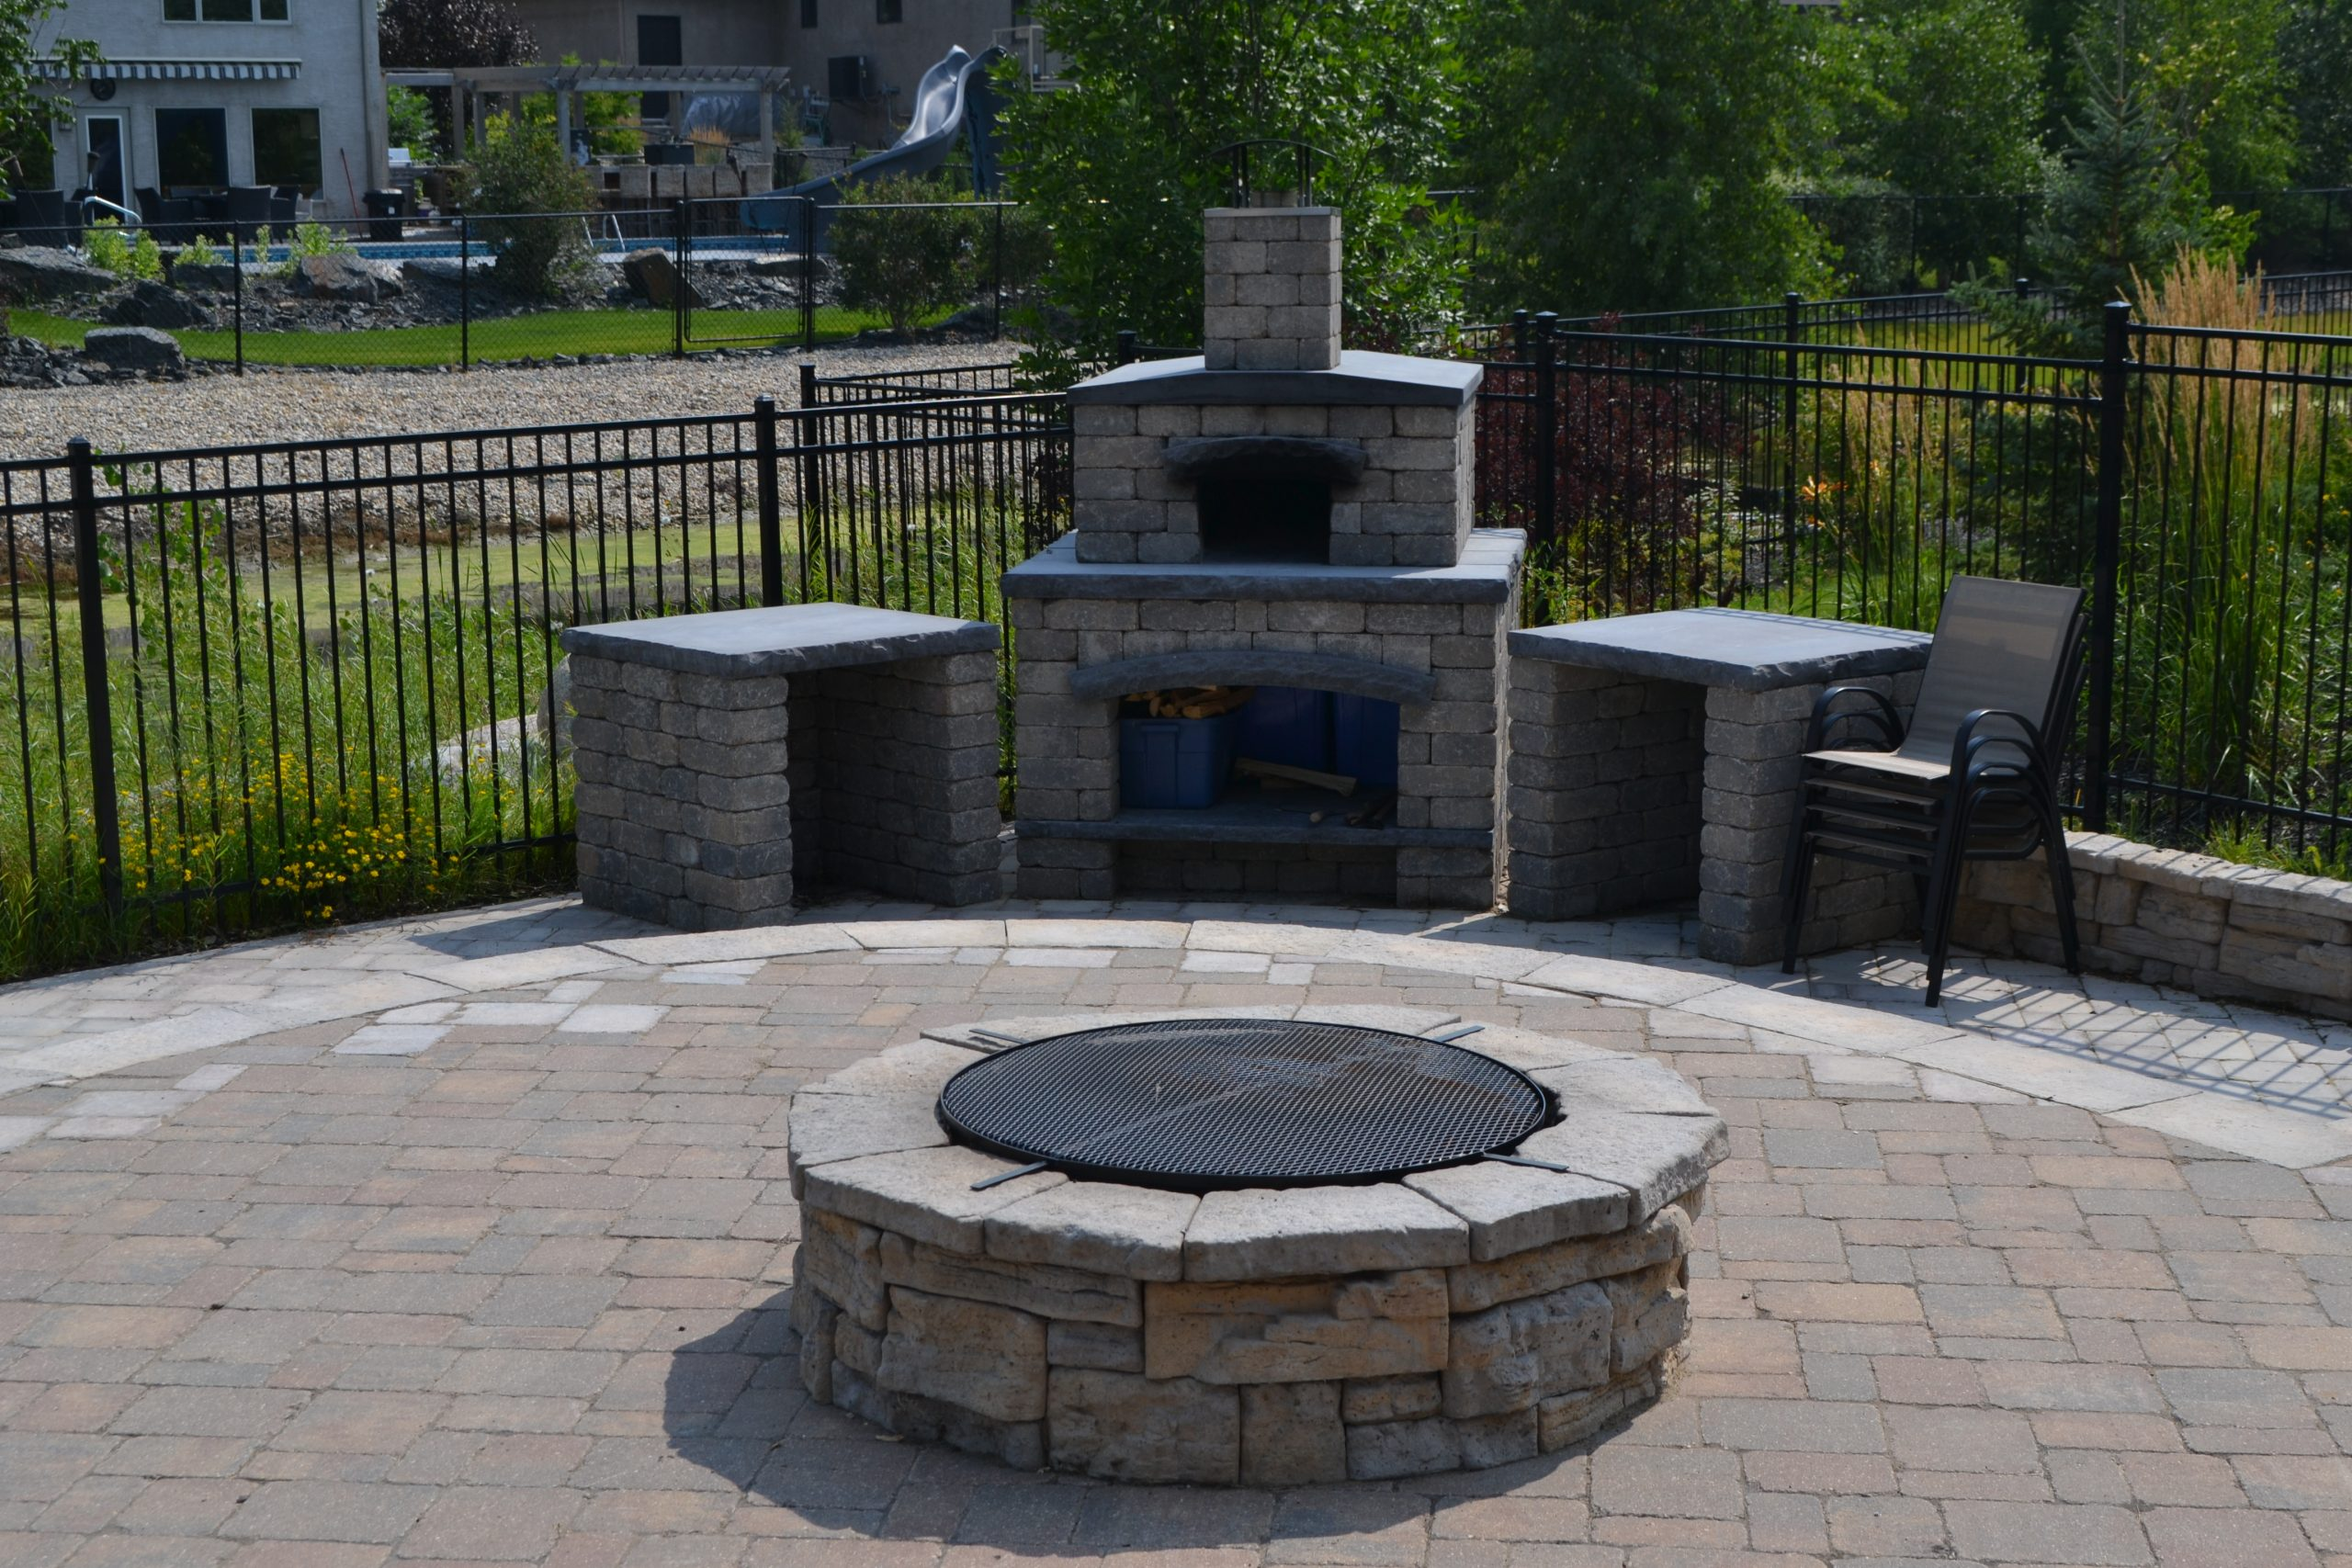 pizza oven by pool